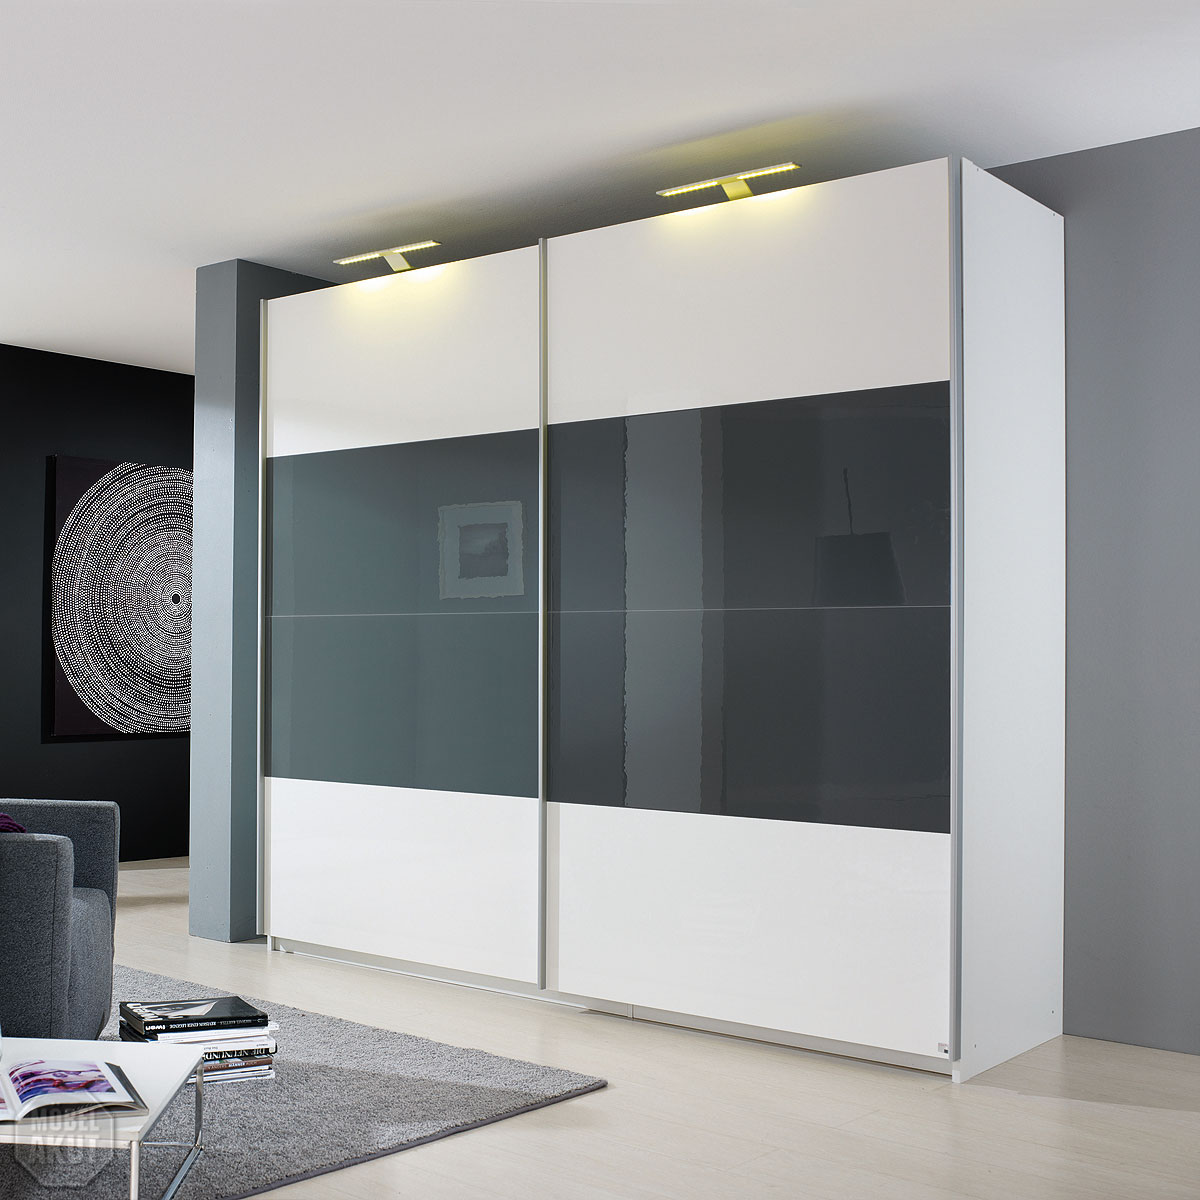 schwebet renschrank beluga base schrank wei grau hochglanz gr enwahl ebay. Black Bedroom Furniture Sets. Home Design Ideas